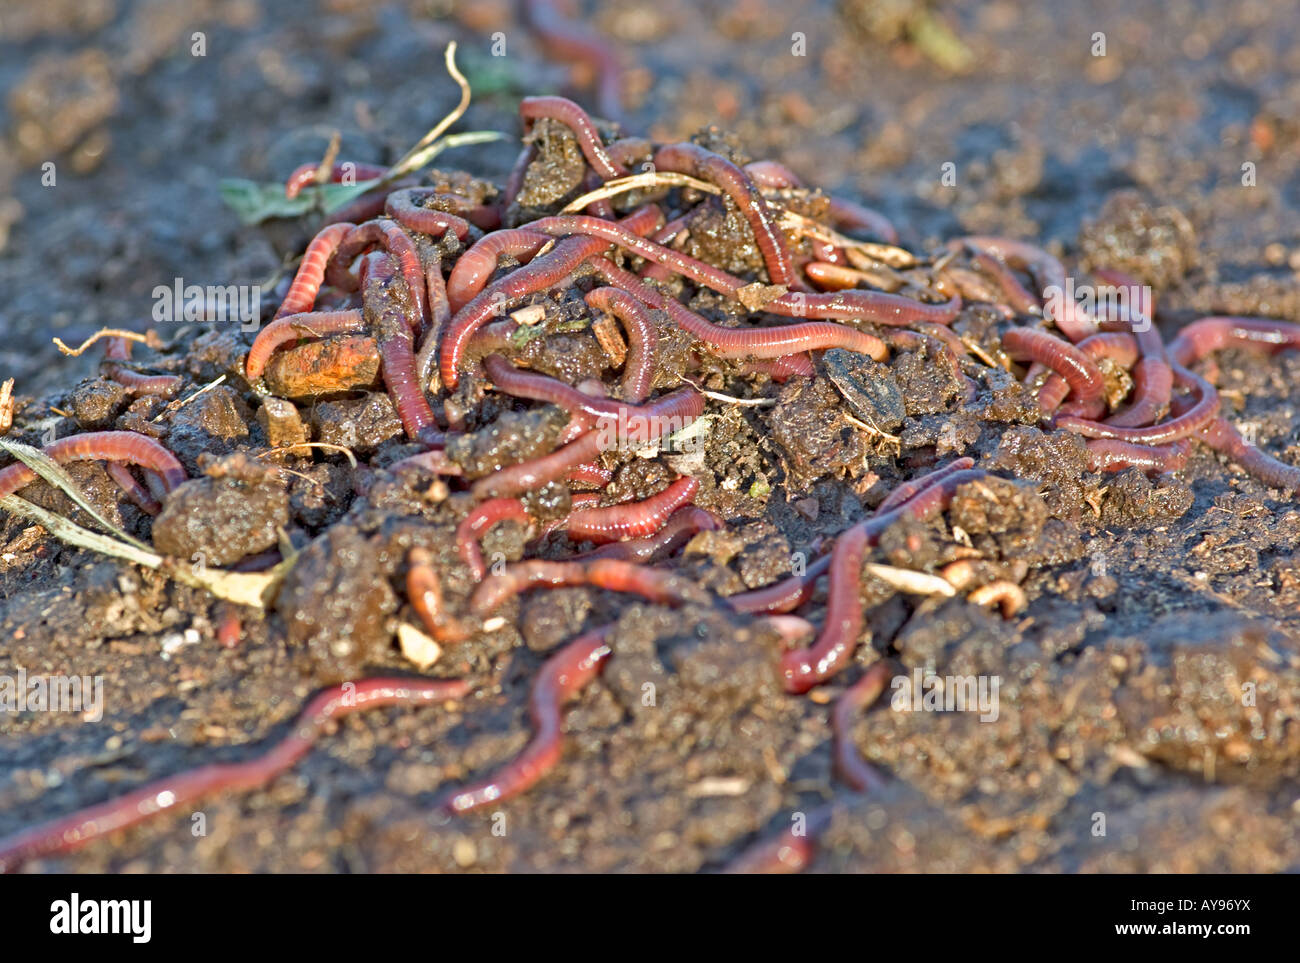 large pile of garden or compost worms - Stock Image